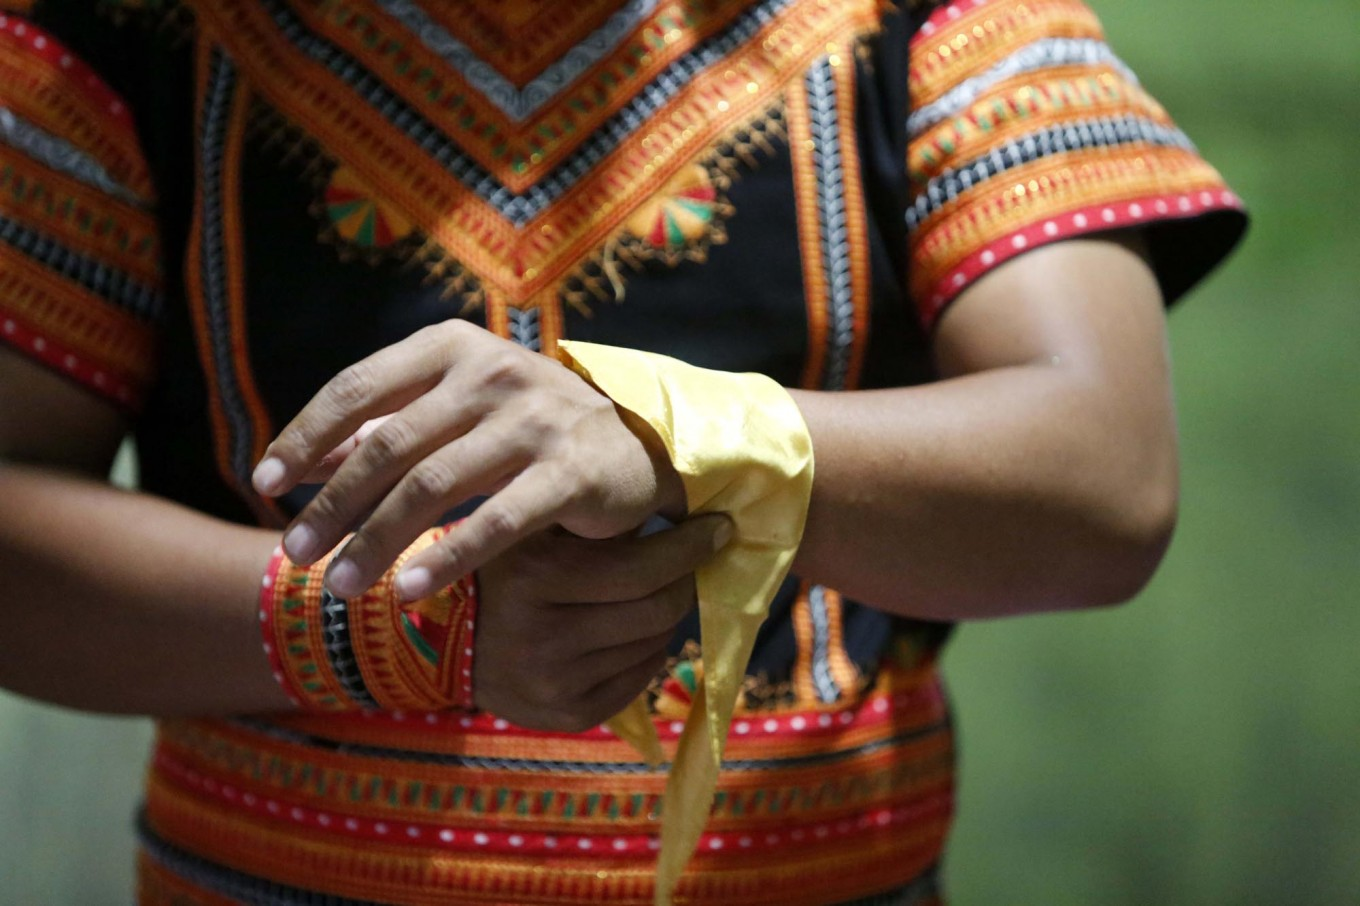 Alimudin ties a yellow handkerchief on his left wrist before performing in the mass dance. JP/Hotli Simanjuntak